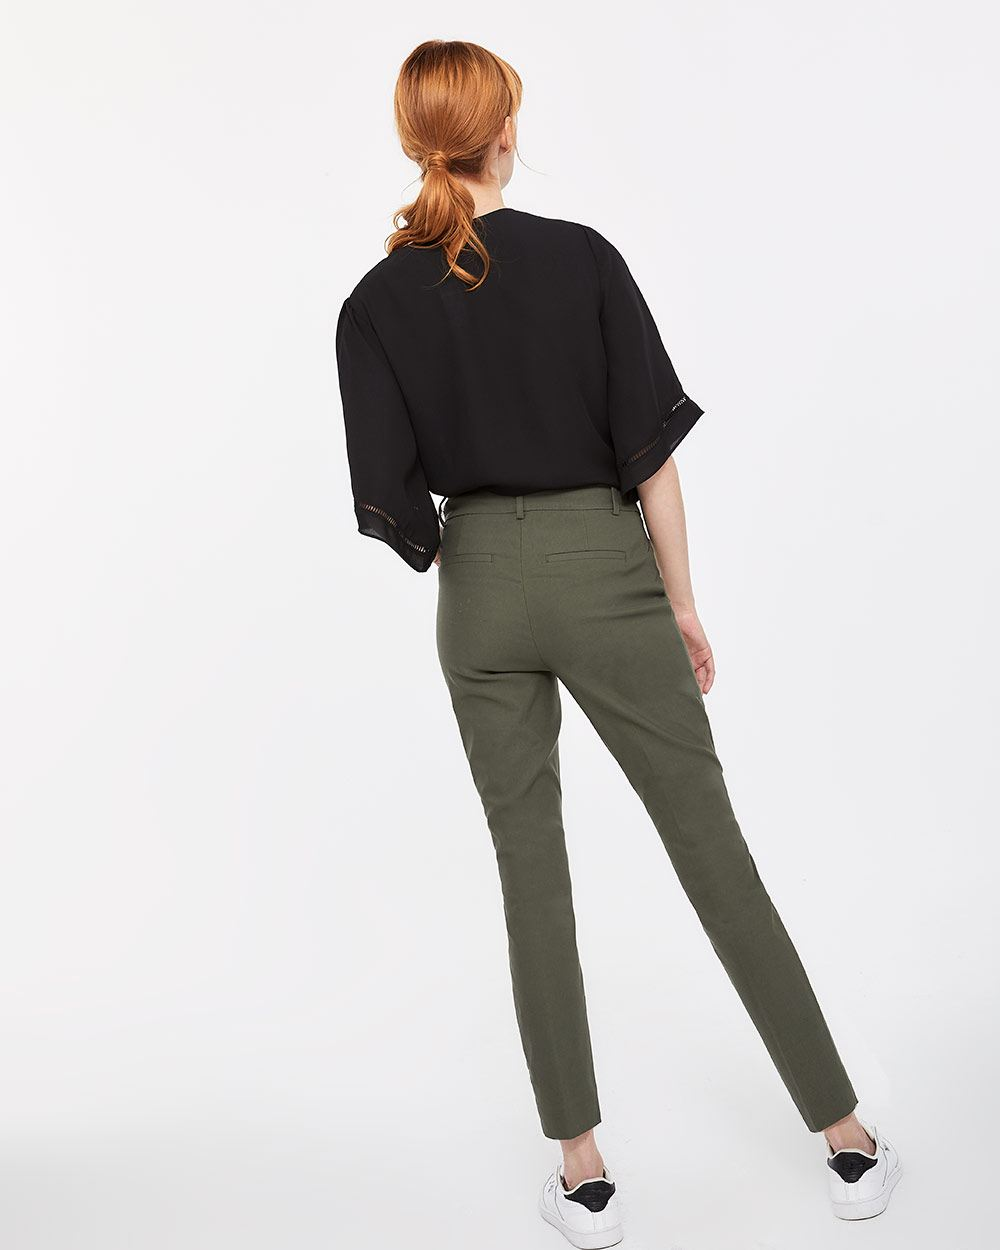 The Iconic Ankle Pants